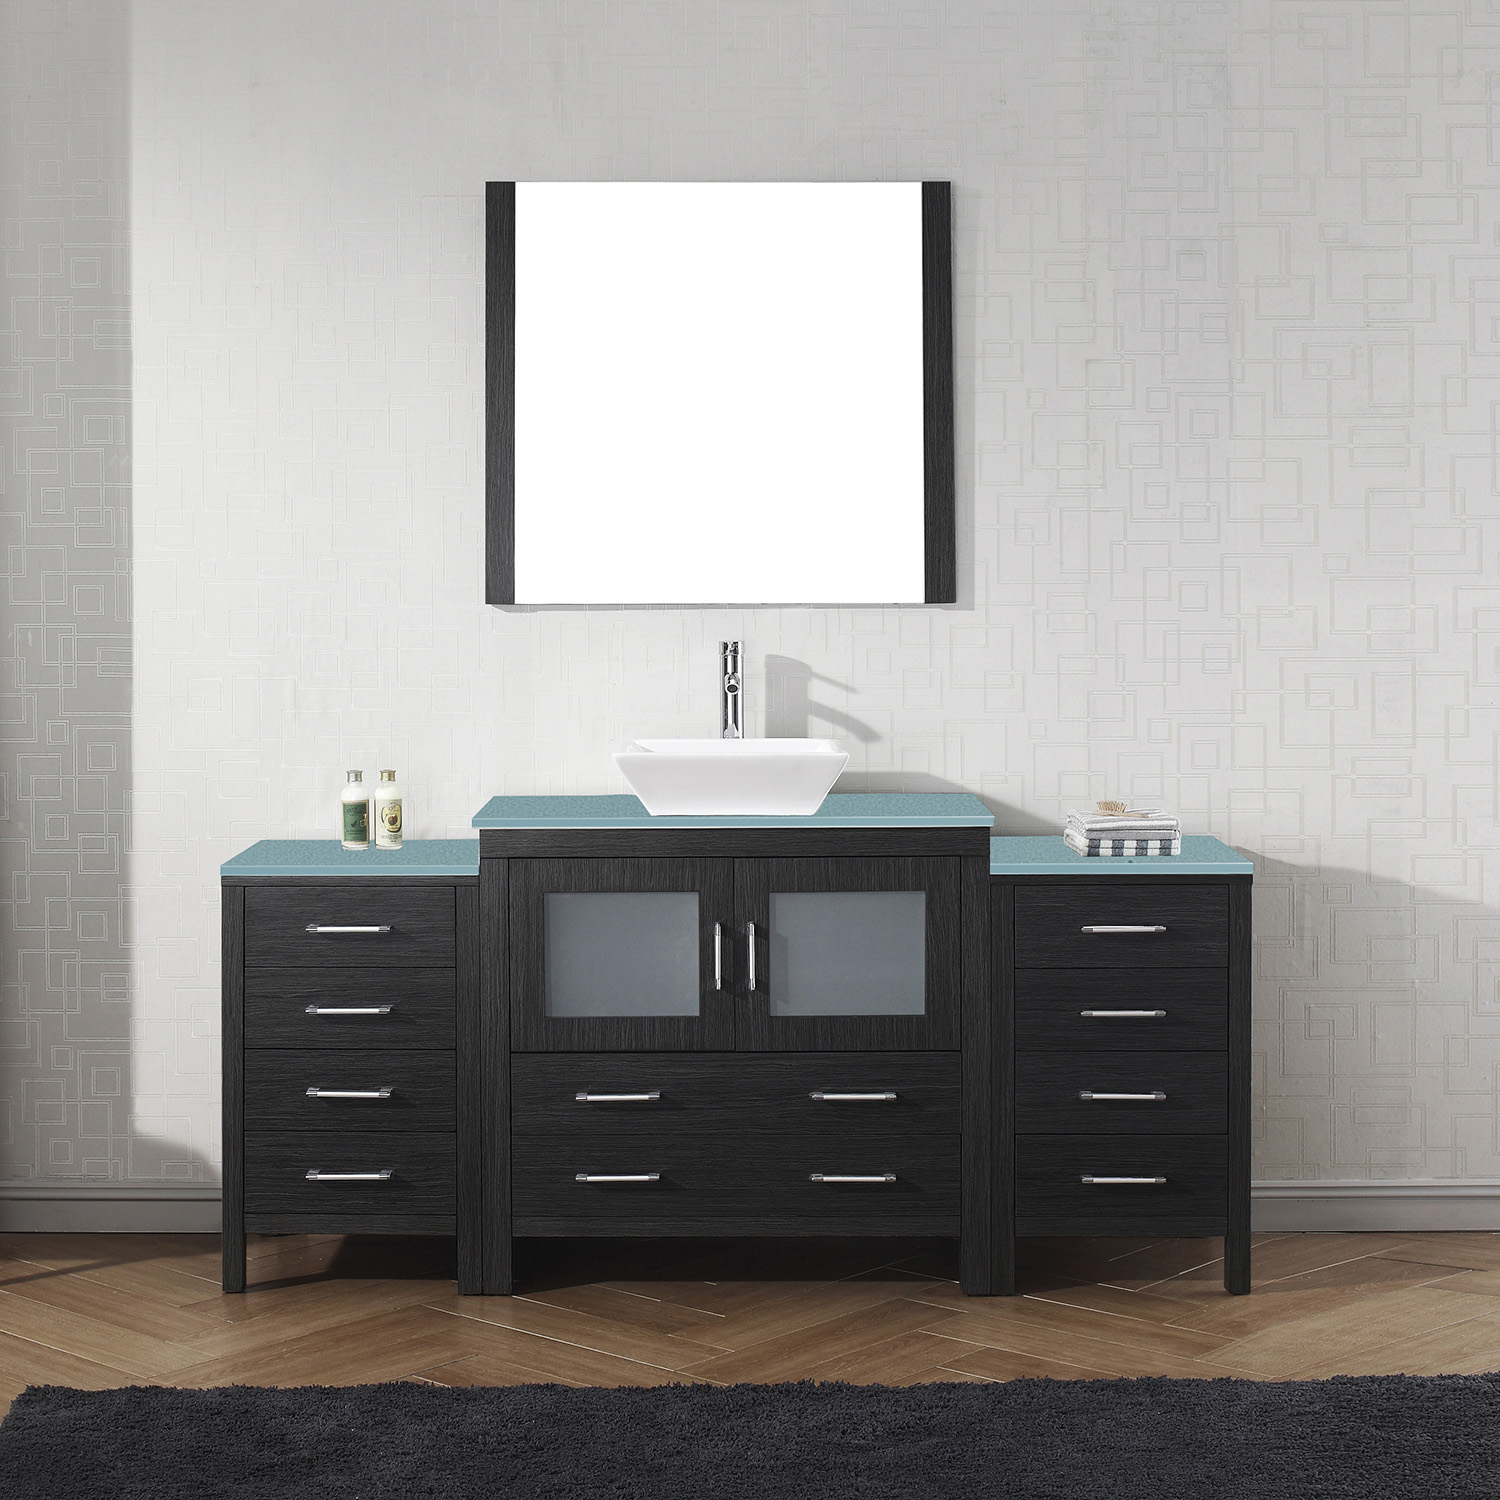 "72"" Single Bath Vanity in Zebra Grey with Aqua Tempered Glass Top and Square Sink with Polished Chrome Faucet and Mirror"